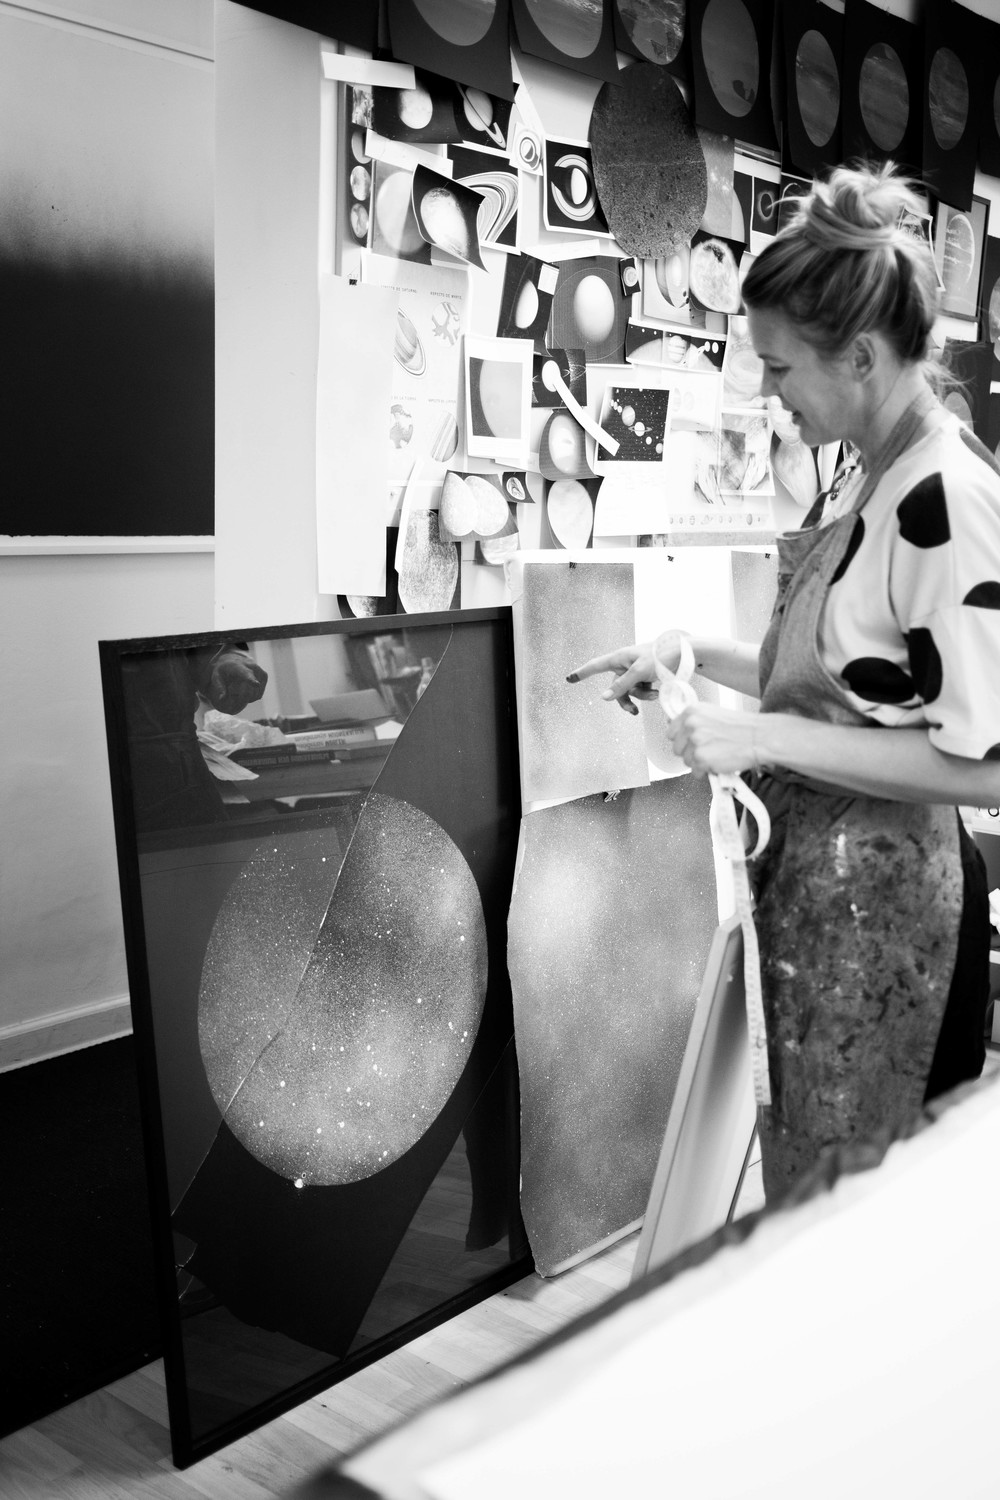 Anne showing me her 'Black Moon' print where the whole process is reversed.